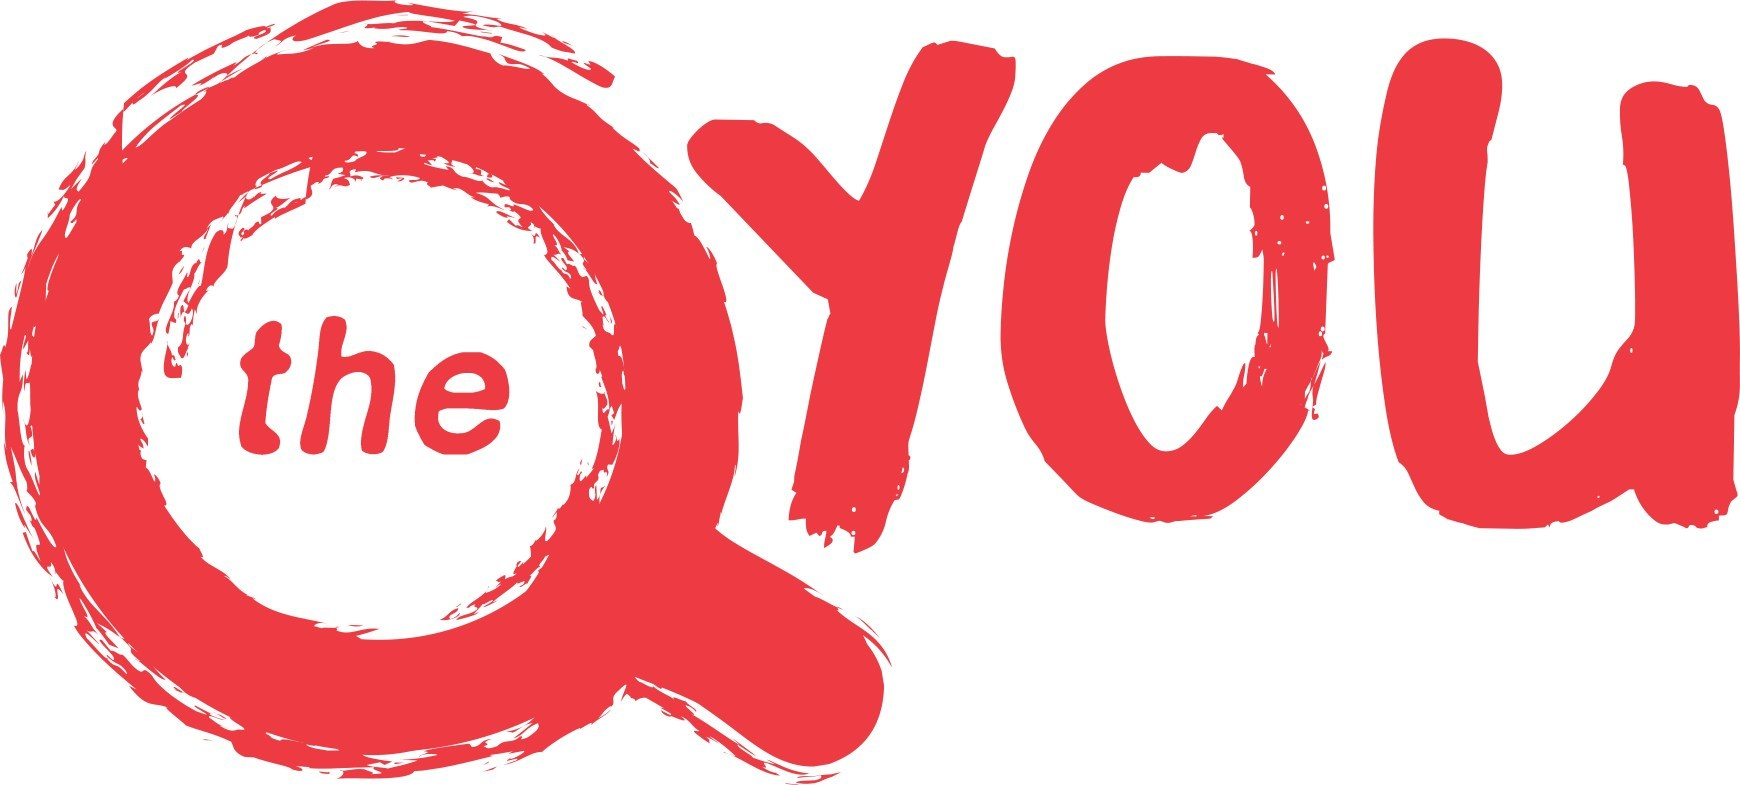 QYOU Media Completes Private Placement With Incoming Board Member and Vice Chair, Vikas Ranjan, As Lead Order